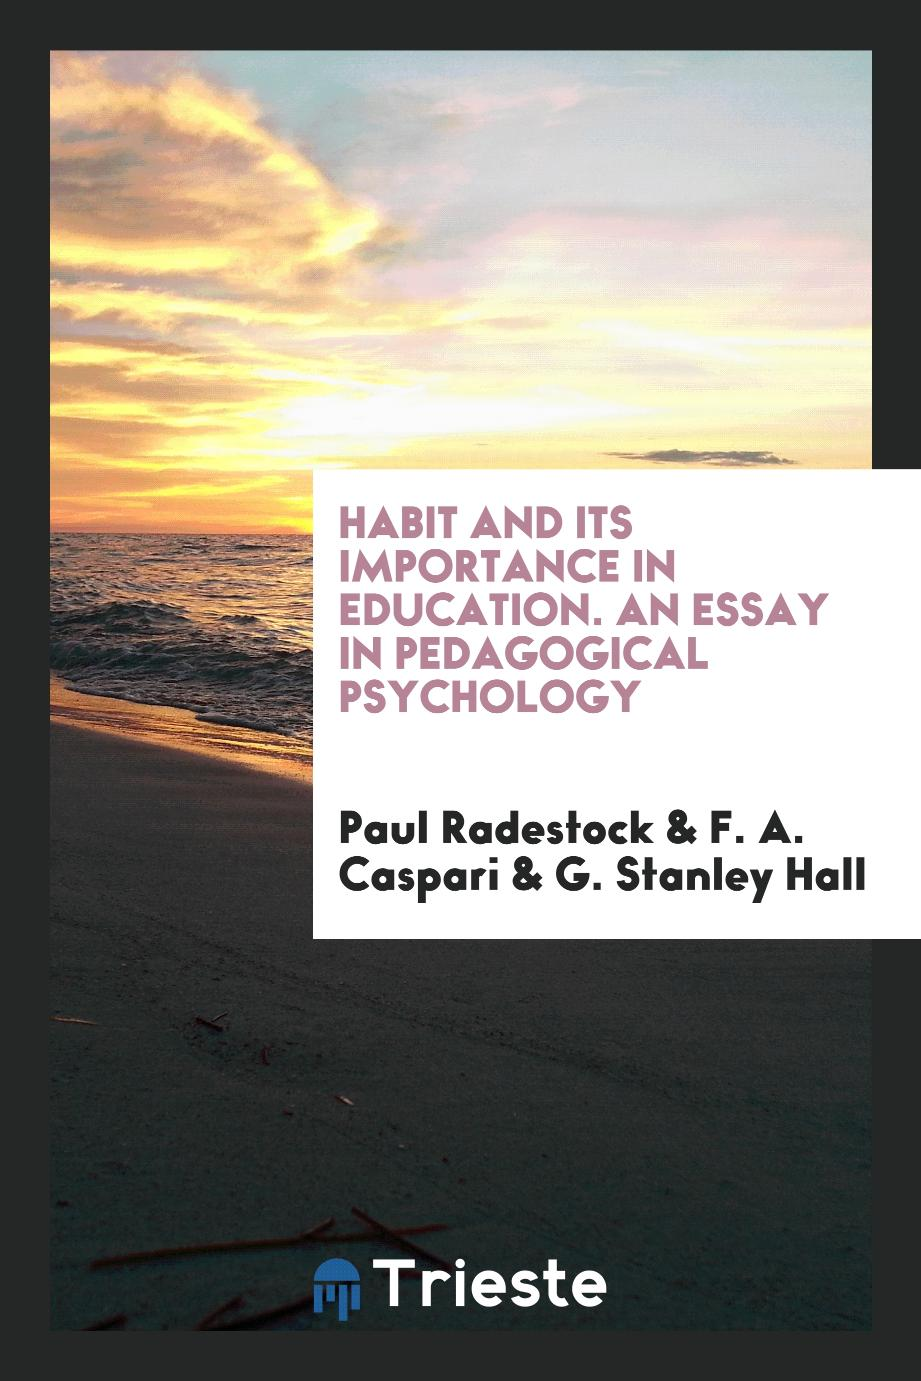 Habit and Its Importance in Education. An Essay in Pedagogical Psychology